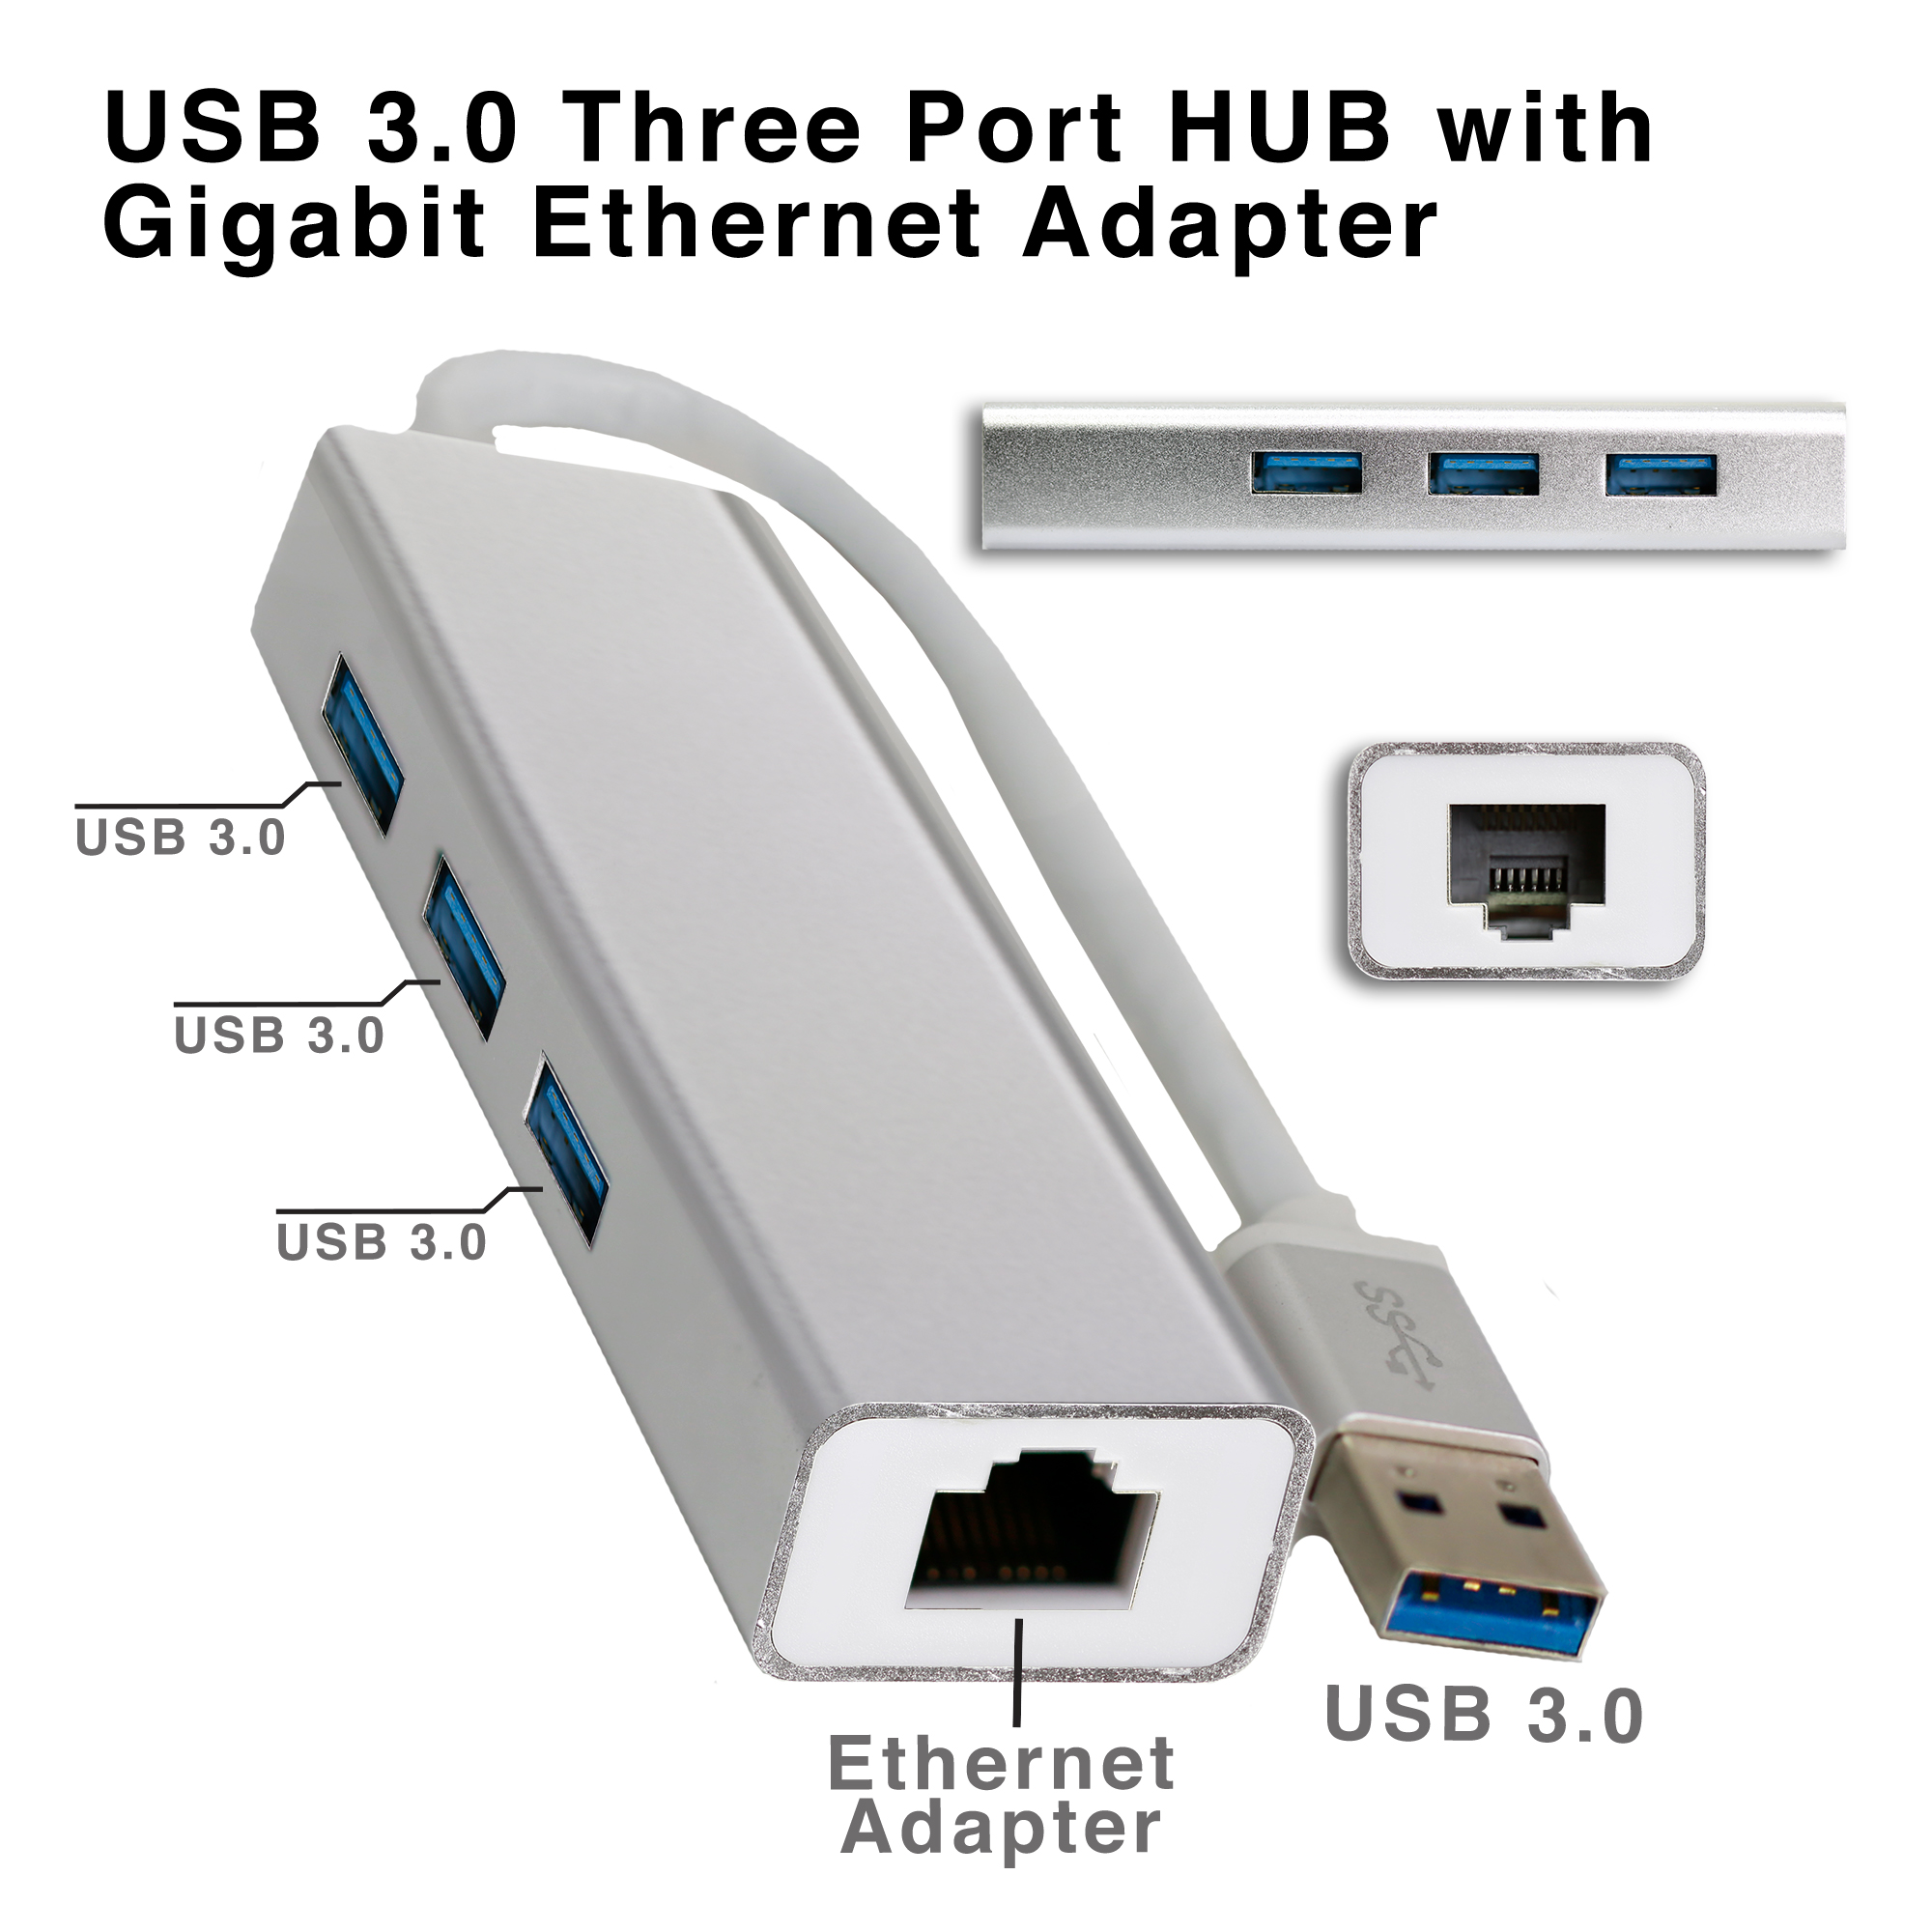 4 in 1 Three Port 3.0 HUB with Gigabit Ethernet Adapter - Silver